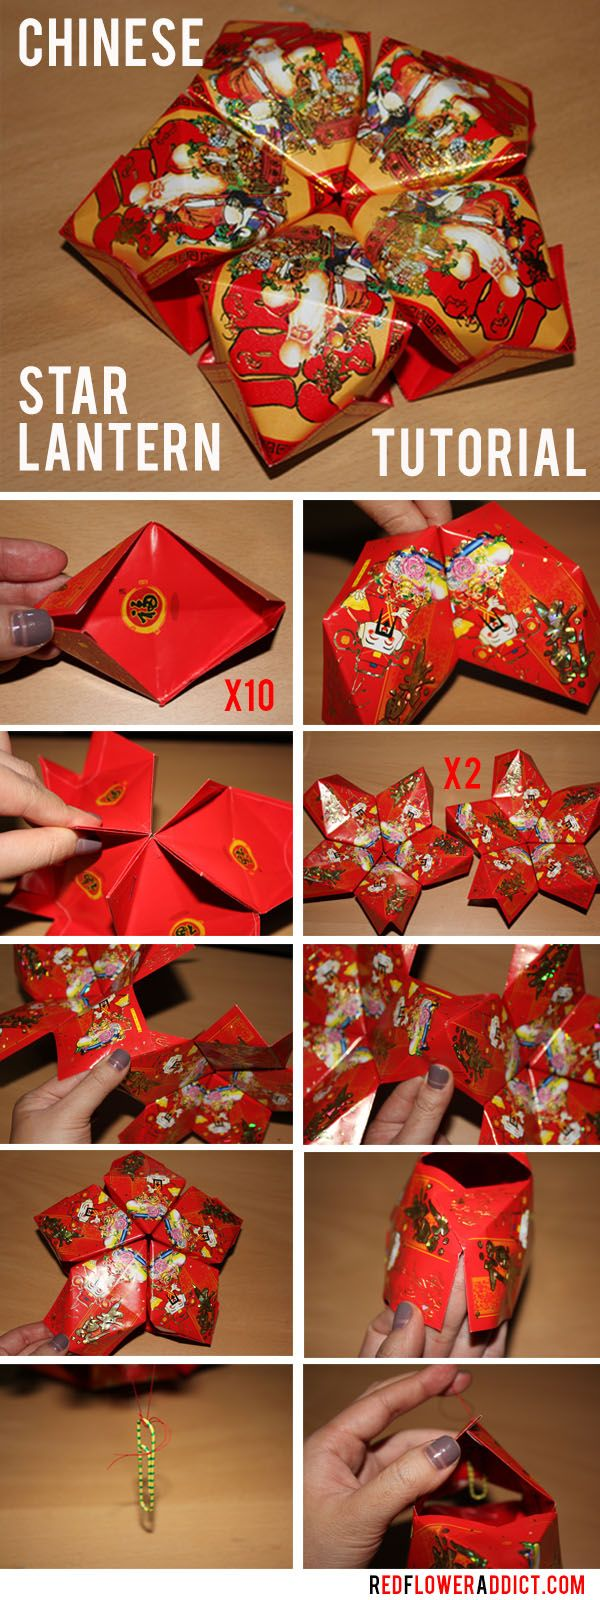 Havent done this one yet Chinese New Year Star Lantern